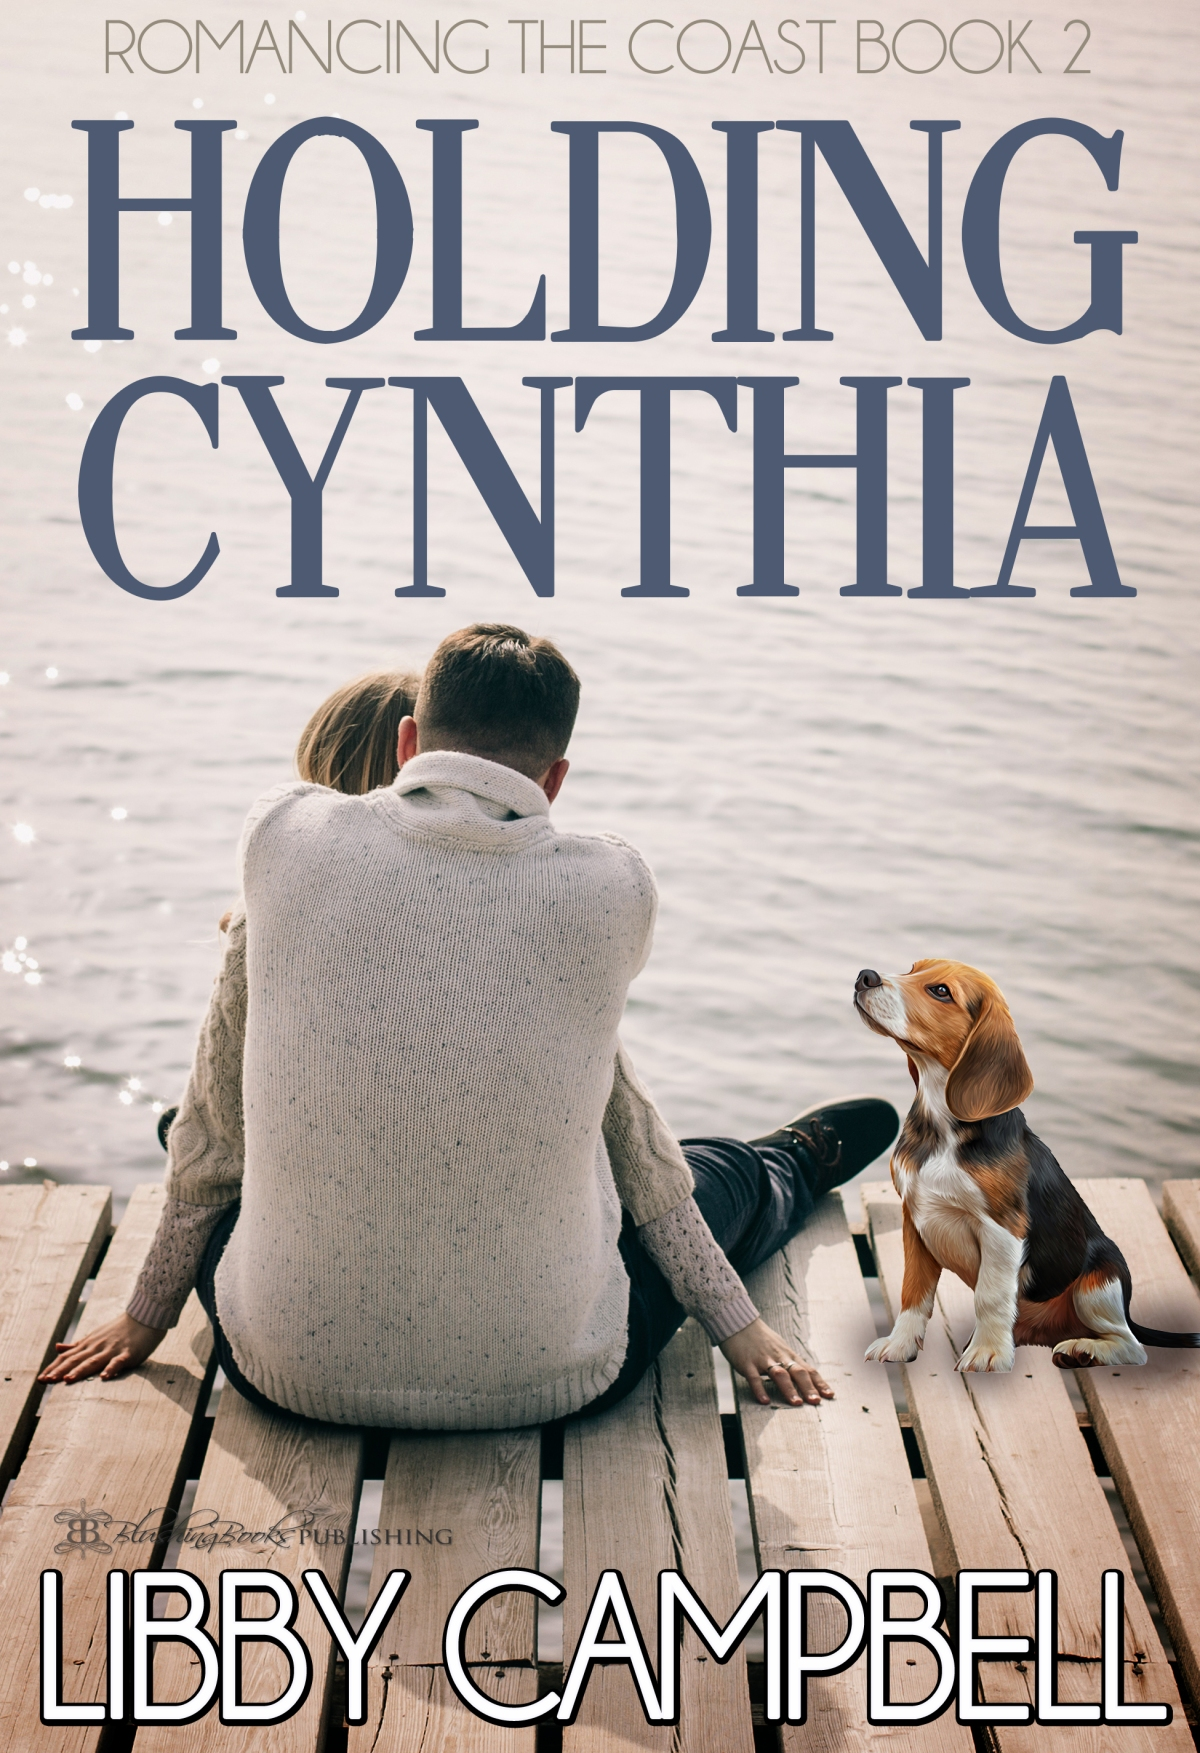 Holding Cynthia by Libby Campbell